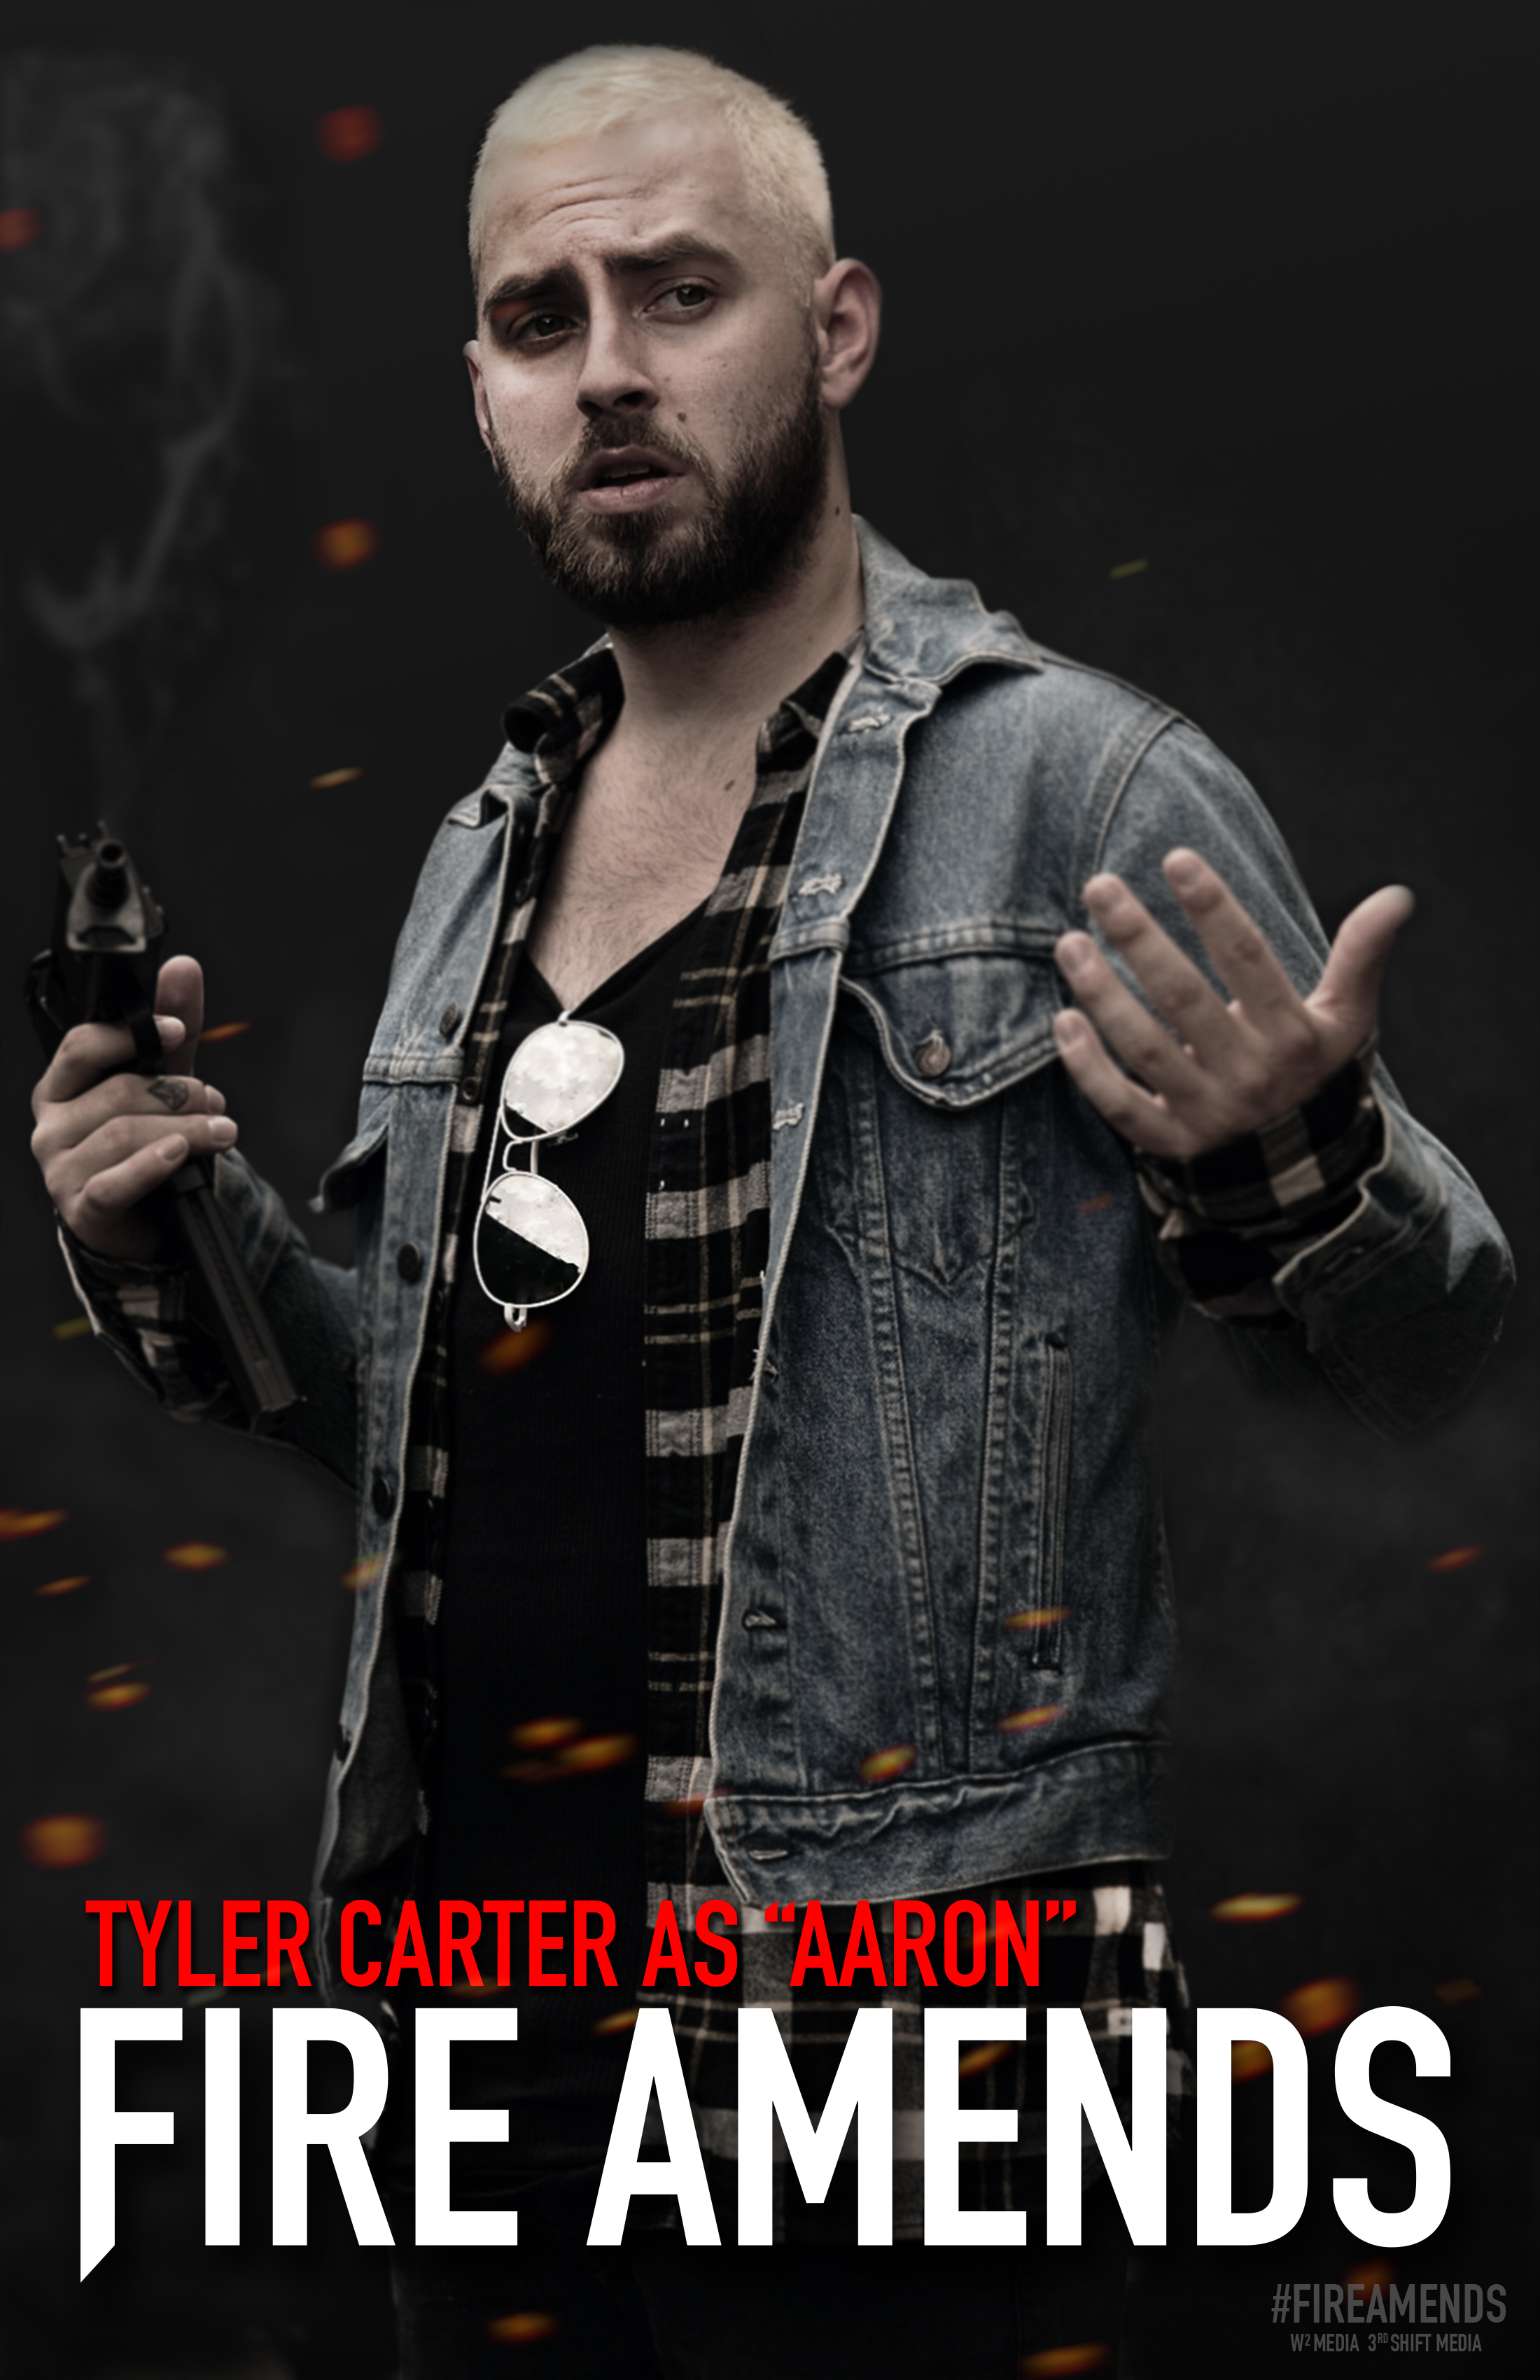 """Pre-Production promotional poster featuring musician Tyler Carter as """"Aaron"""" the arms dealer."""